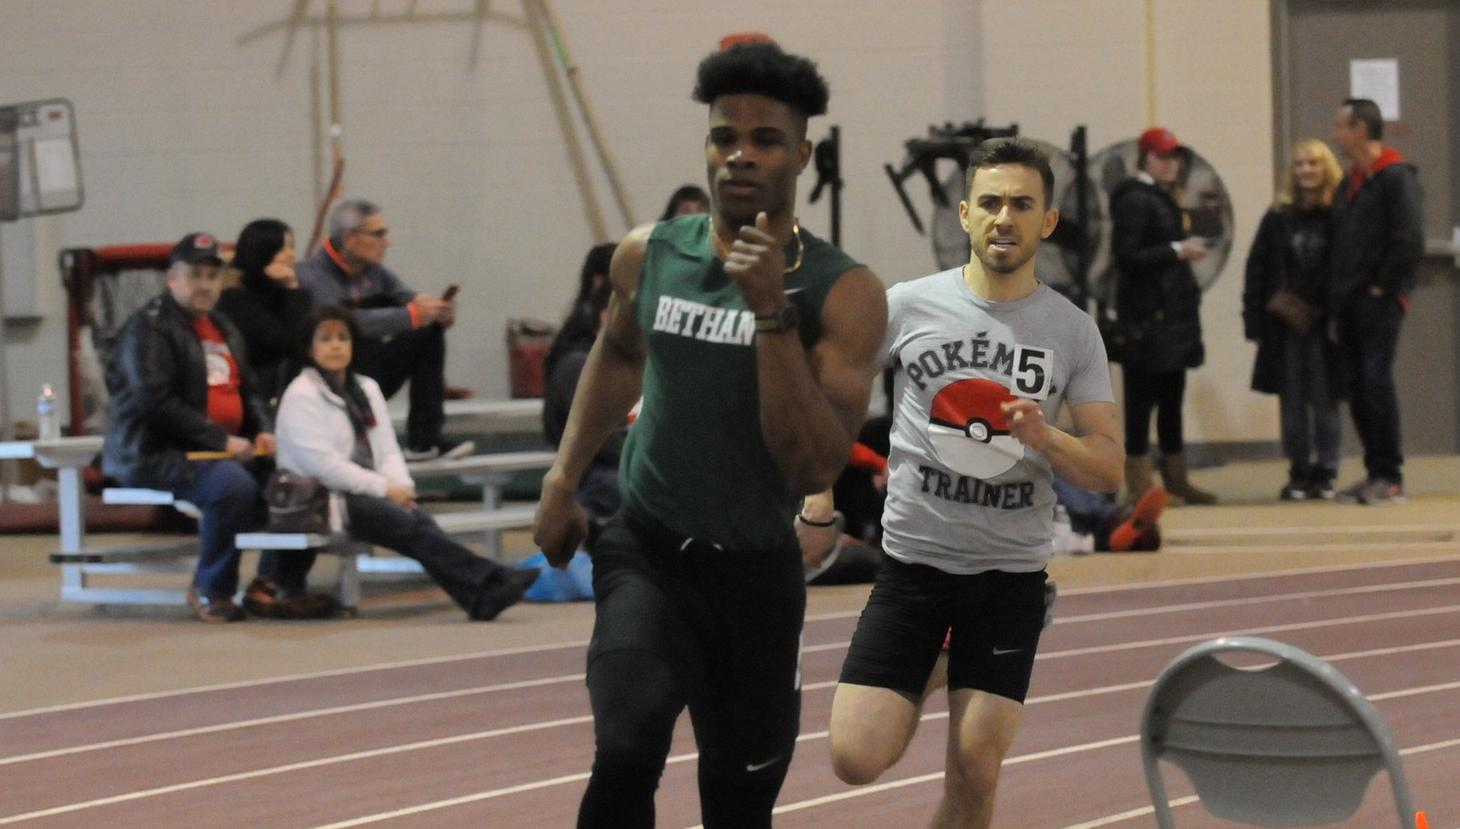 Bison track and field teams compete at Capital Invite